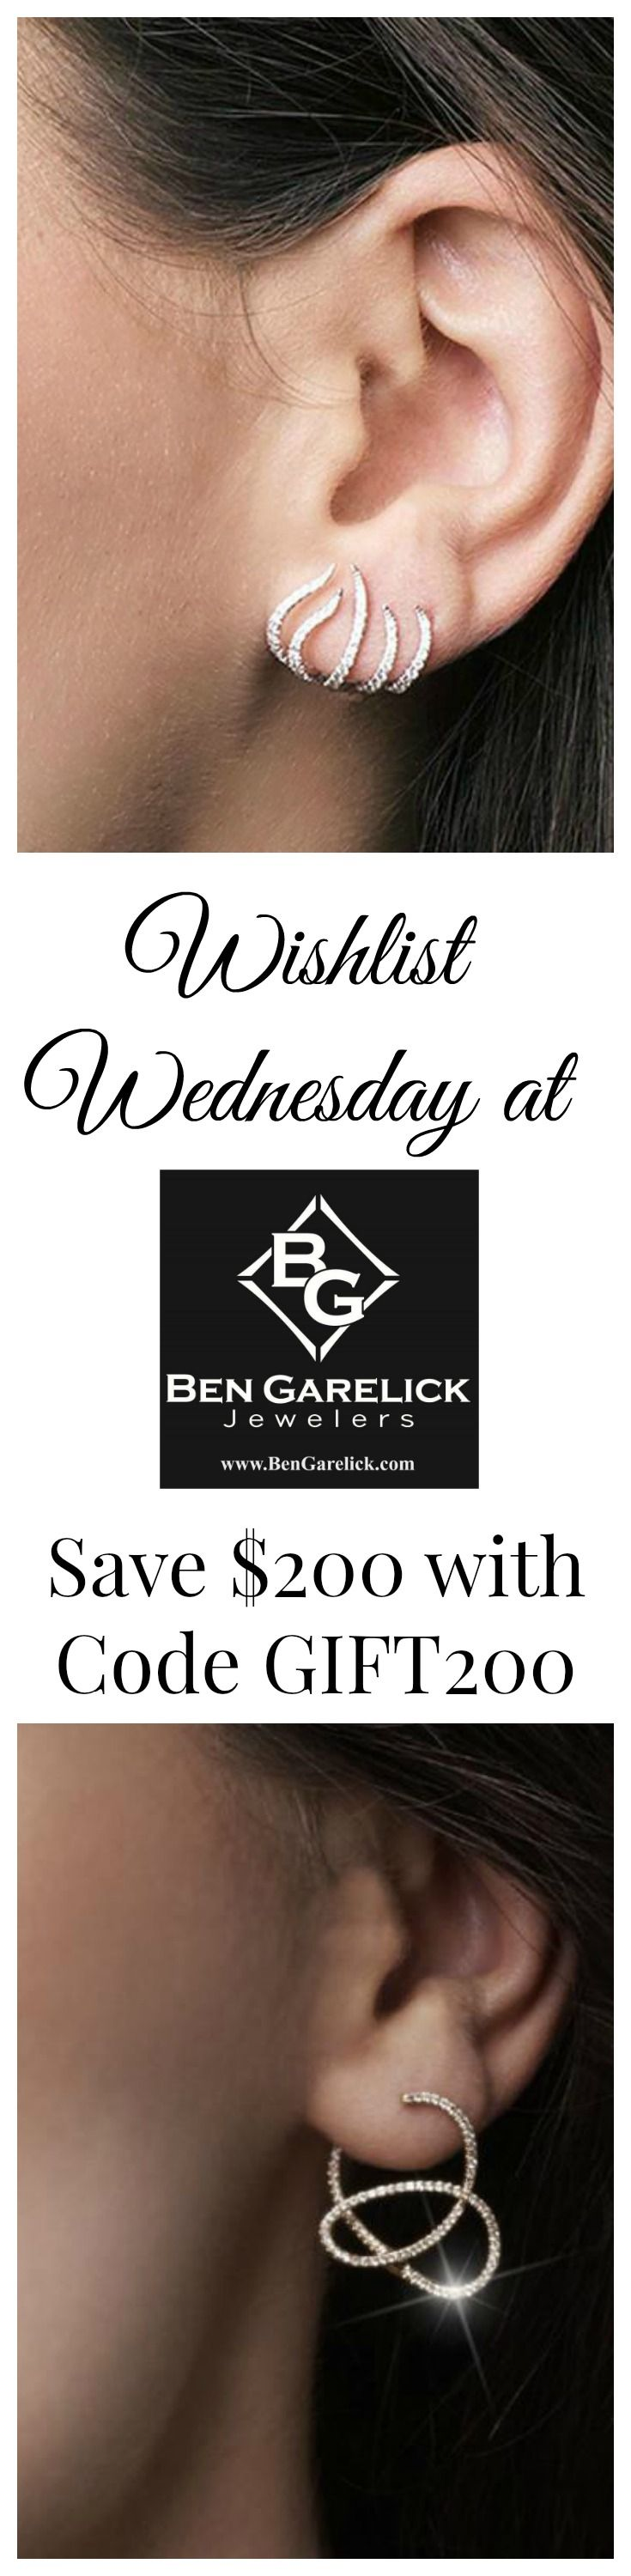 Wishlist Wednesday! Which pair of Diamond Gabriel Earrings makes your list? Save $200 off your choice with code GIFT200 through December 31, 2016. #BenGarelick #GabrielRetailer #Sparkleobsession